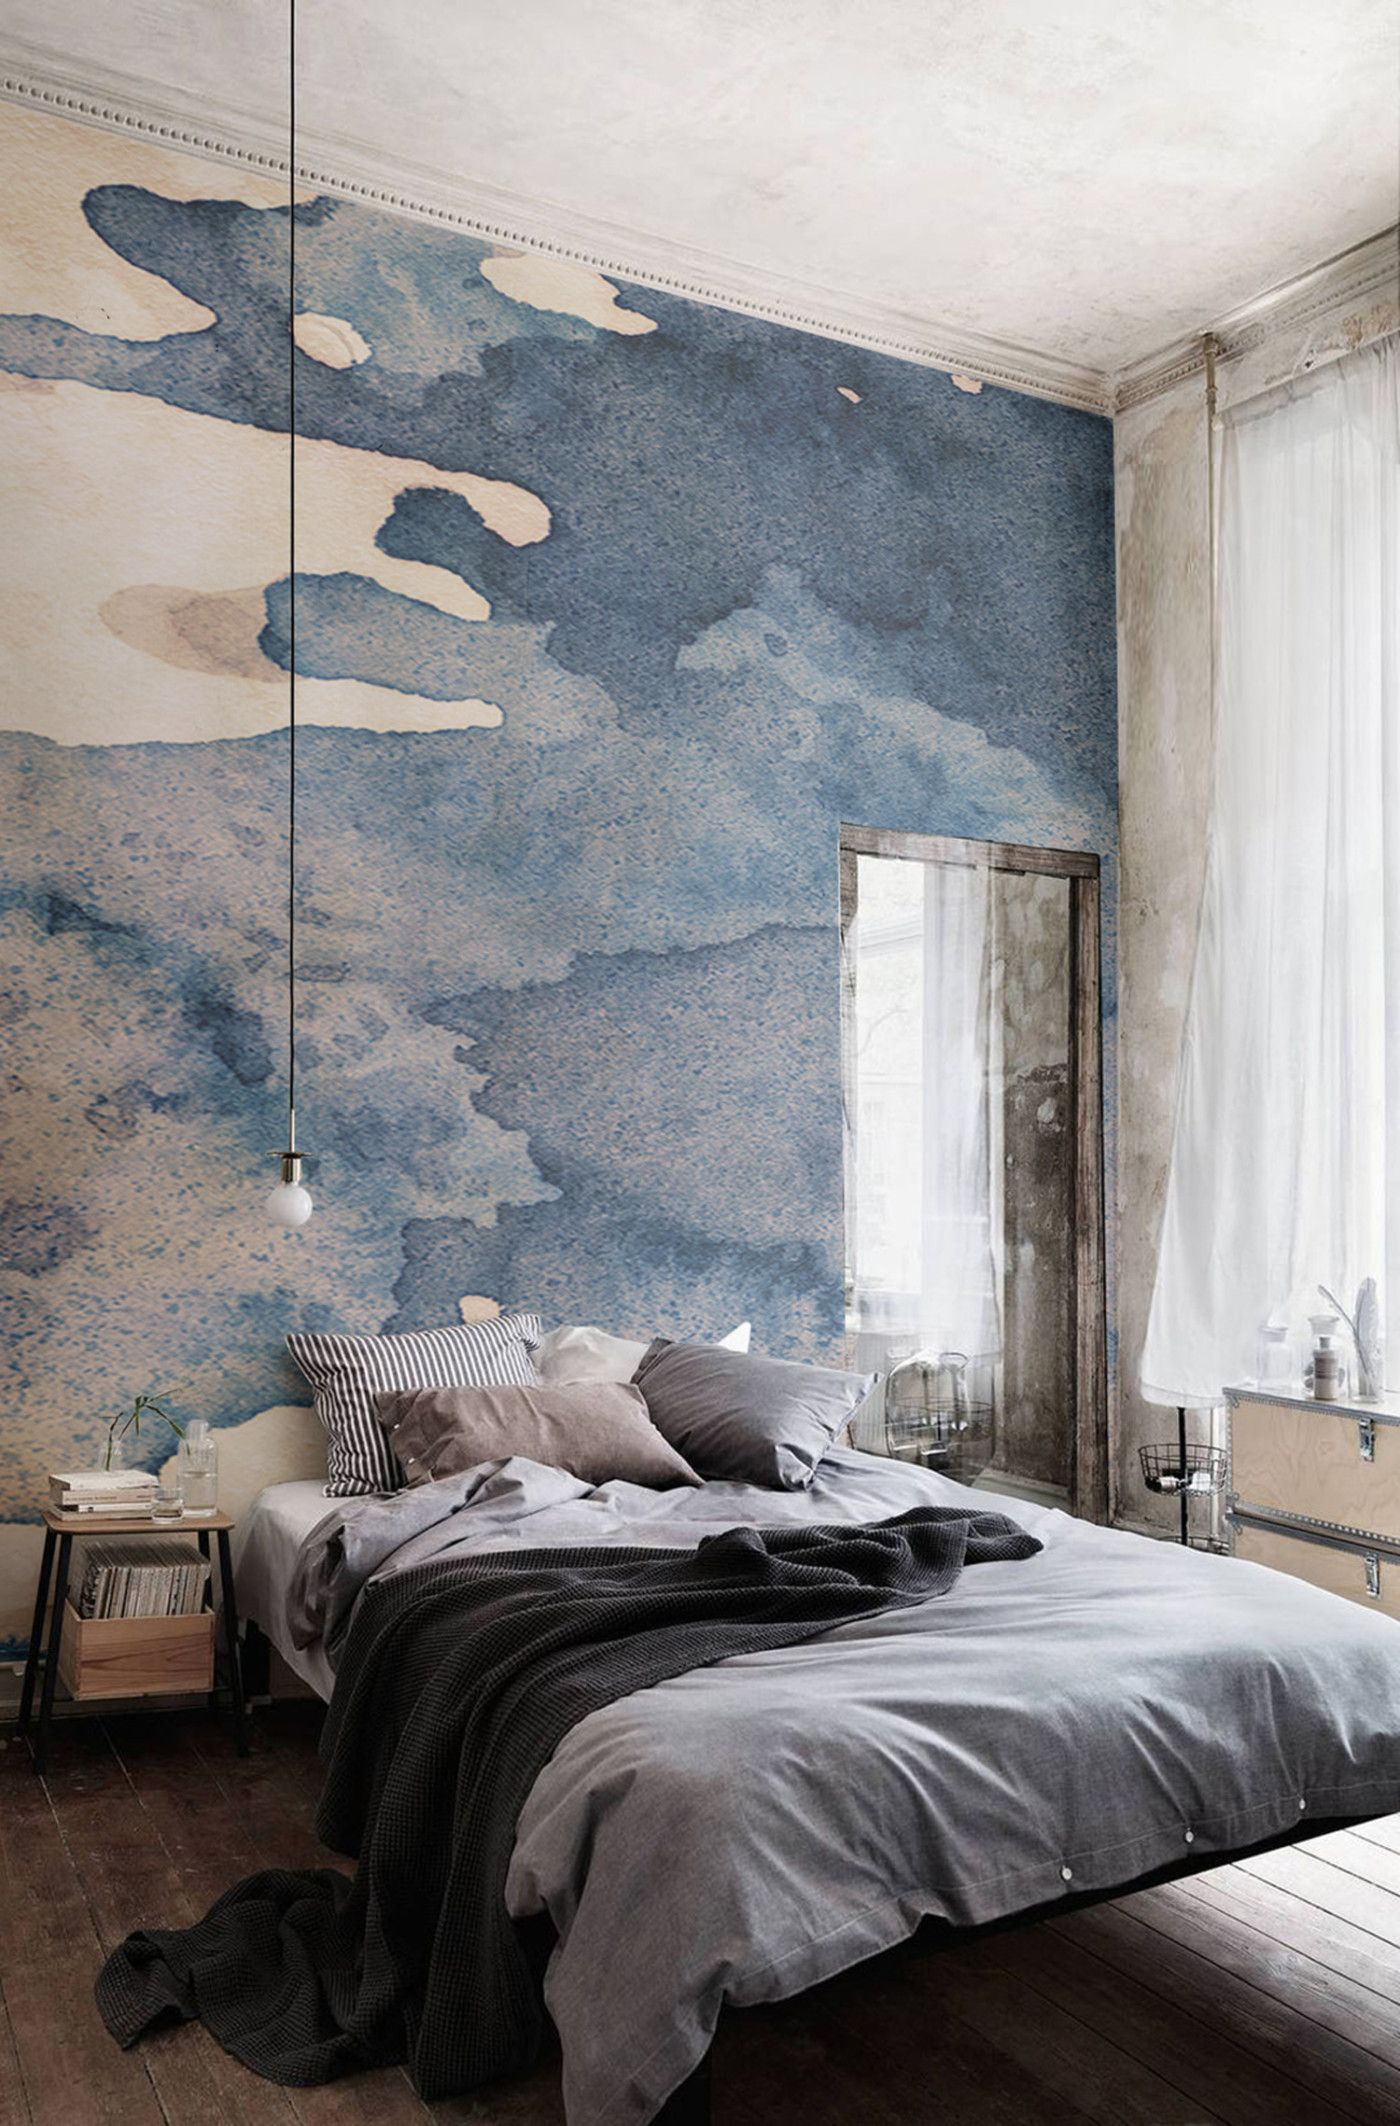 Best Dream On With These 11 Watercolour Wallpapers Bedroom Decor Watercolor Wallpaper Home Bedroom 640 x 480